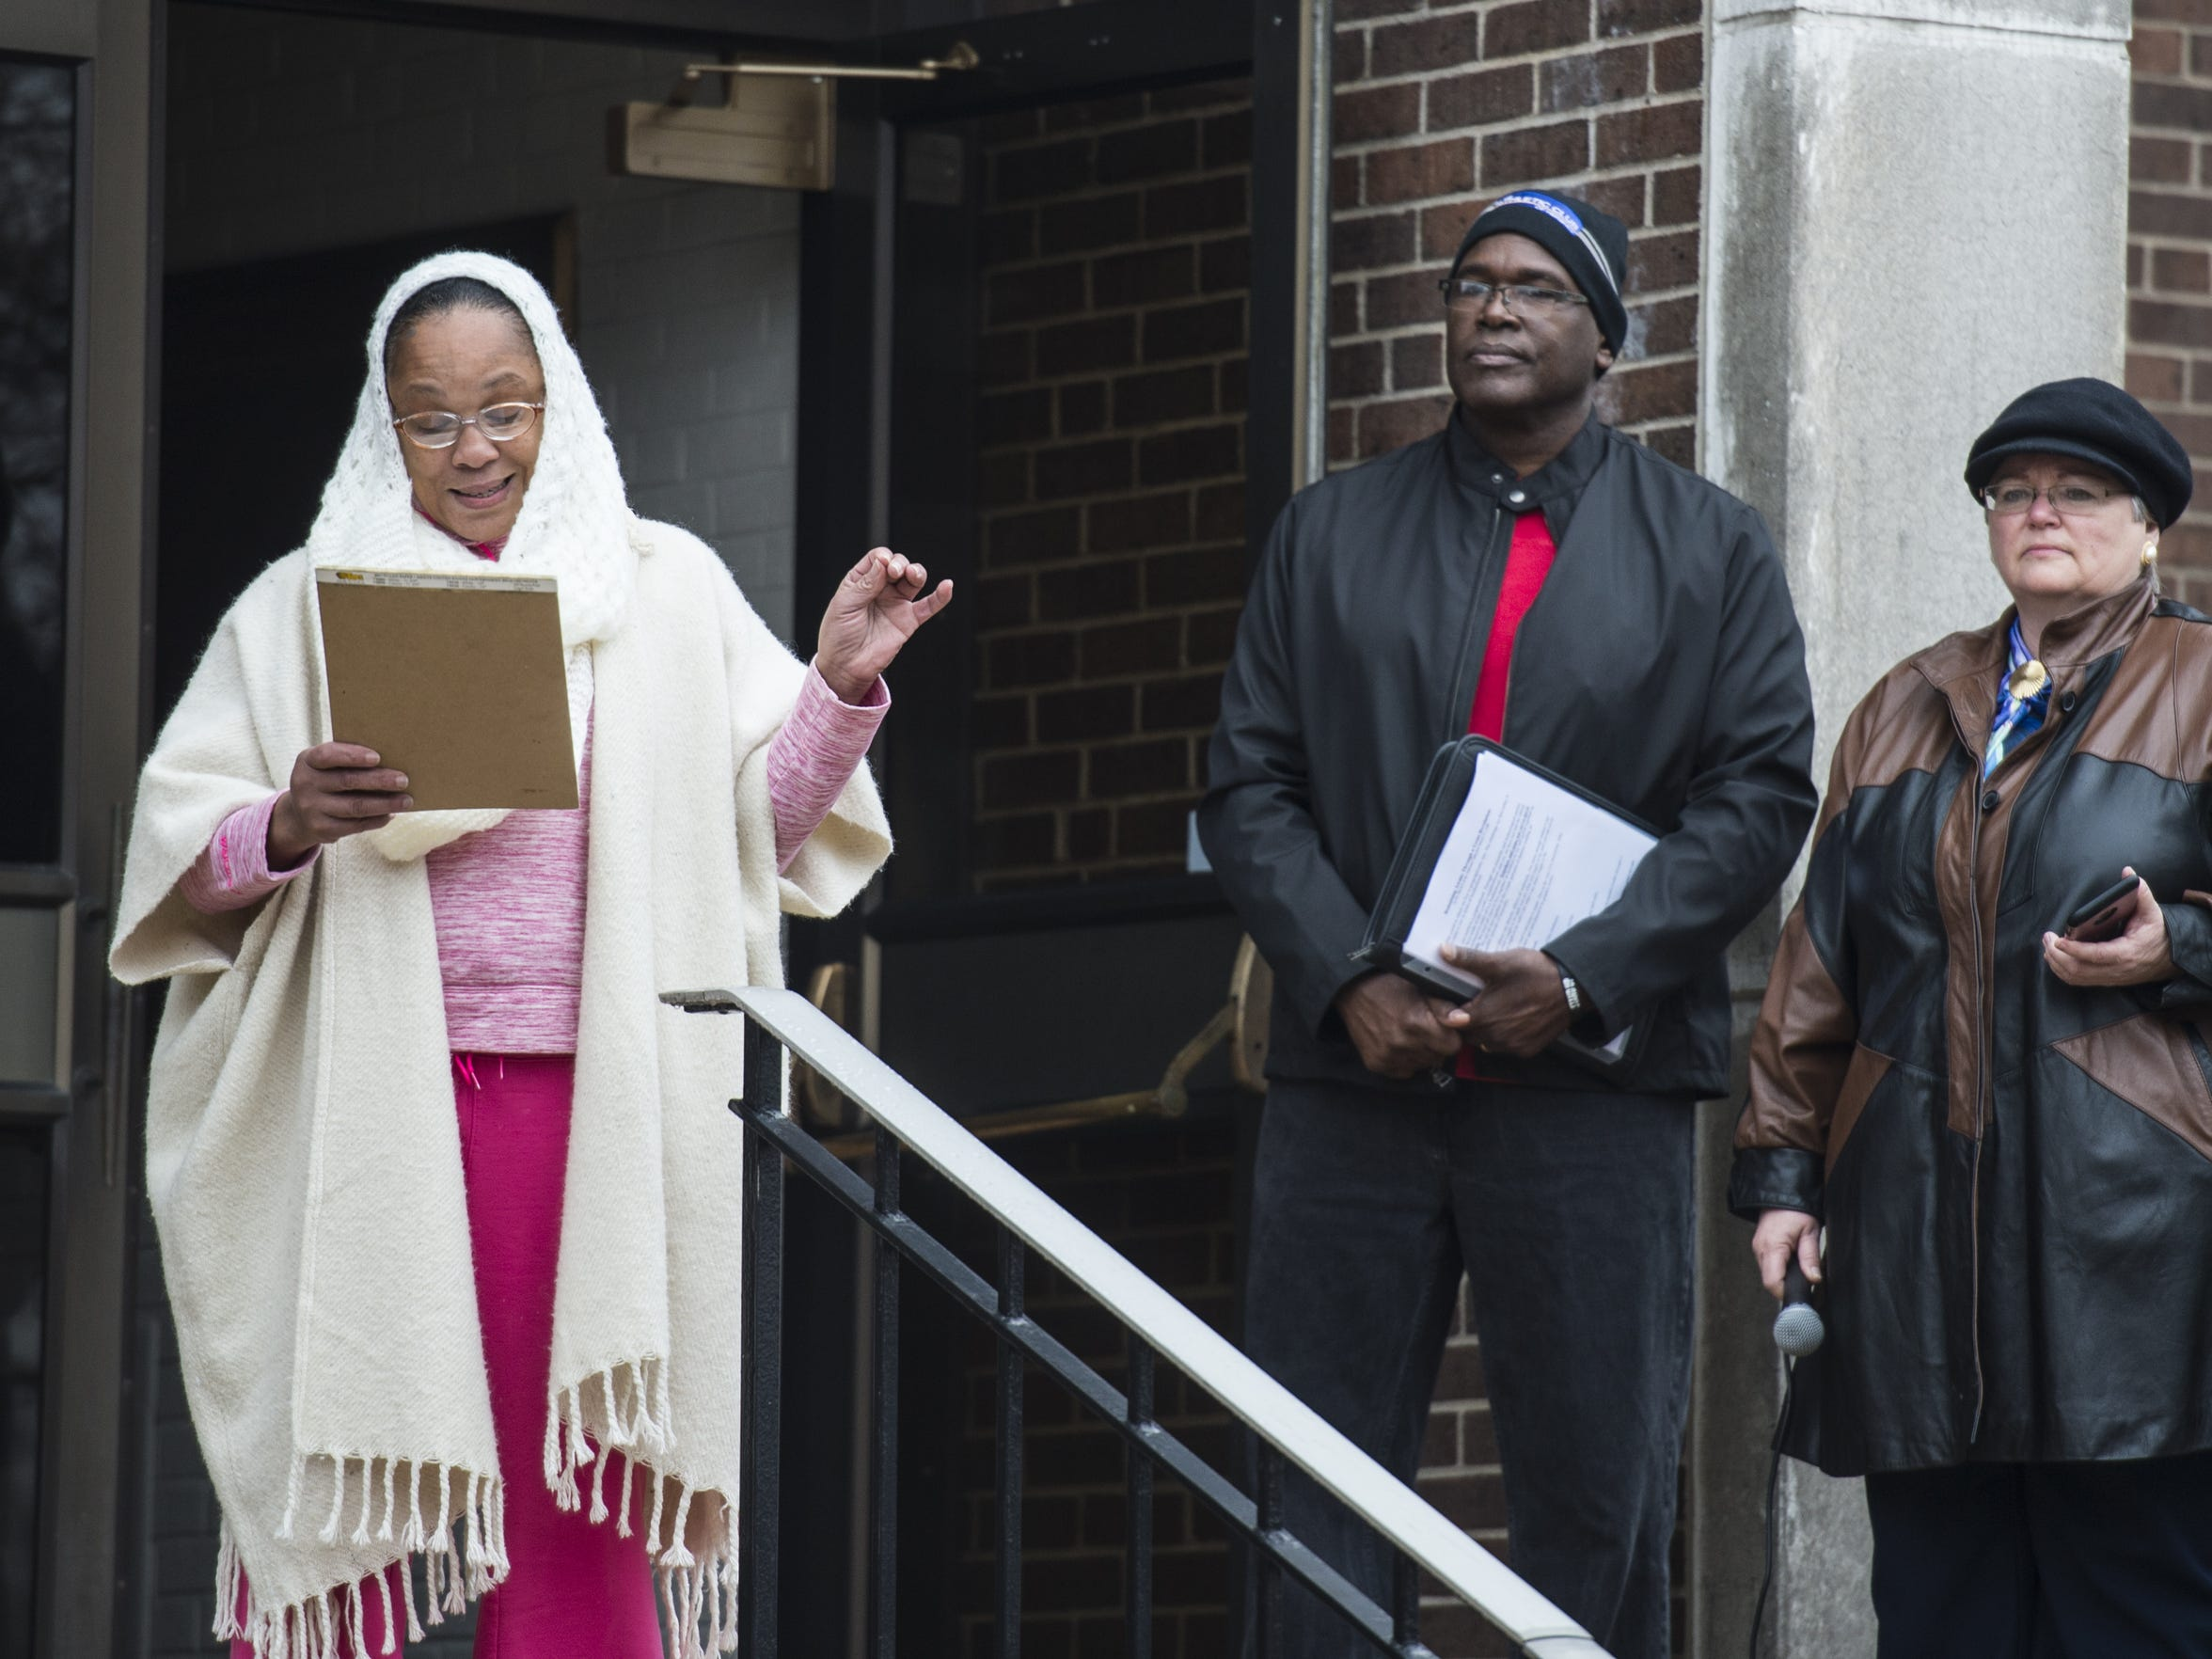 Lady Kelly Wayne-Saldana speaks as members of the Annville Township community and members of Lebanon Valley College held a march and rally to end racism on Tuesday, Feb. 7, 2017. Wayne-Saldana said she has never personally experienced racism in Lebanon County but wanted to support the Bugg family.